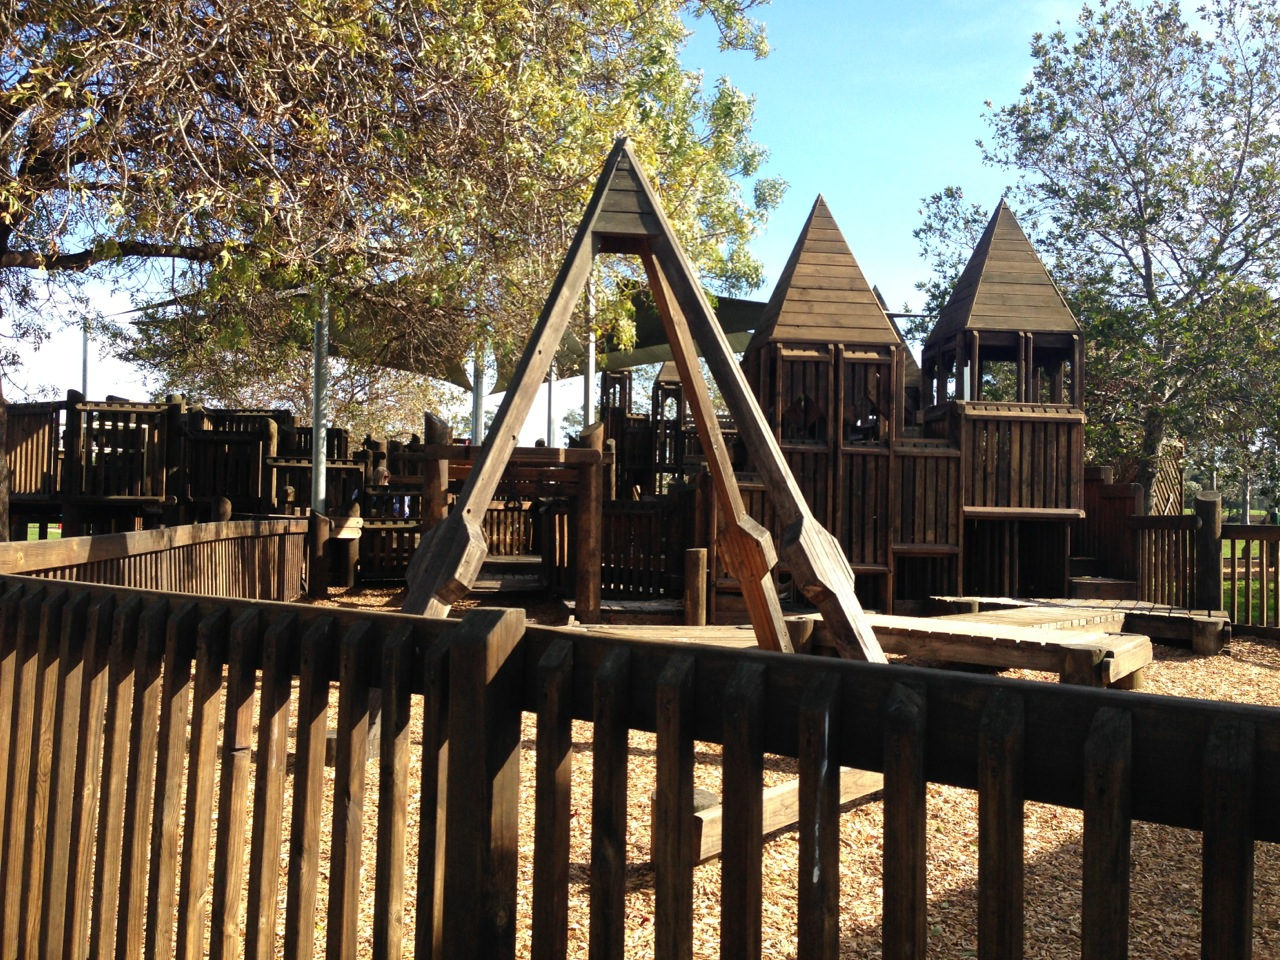 Middle Park Community Playground